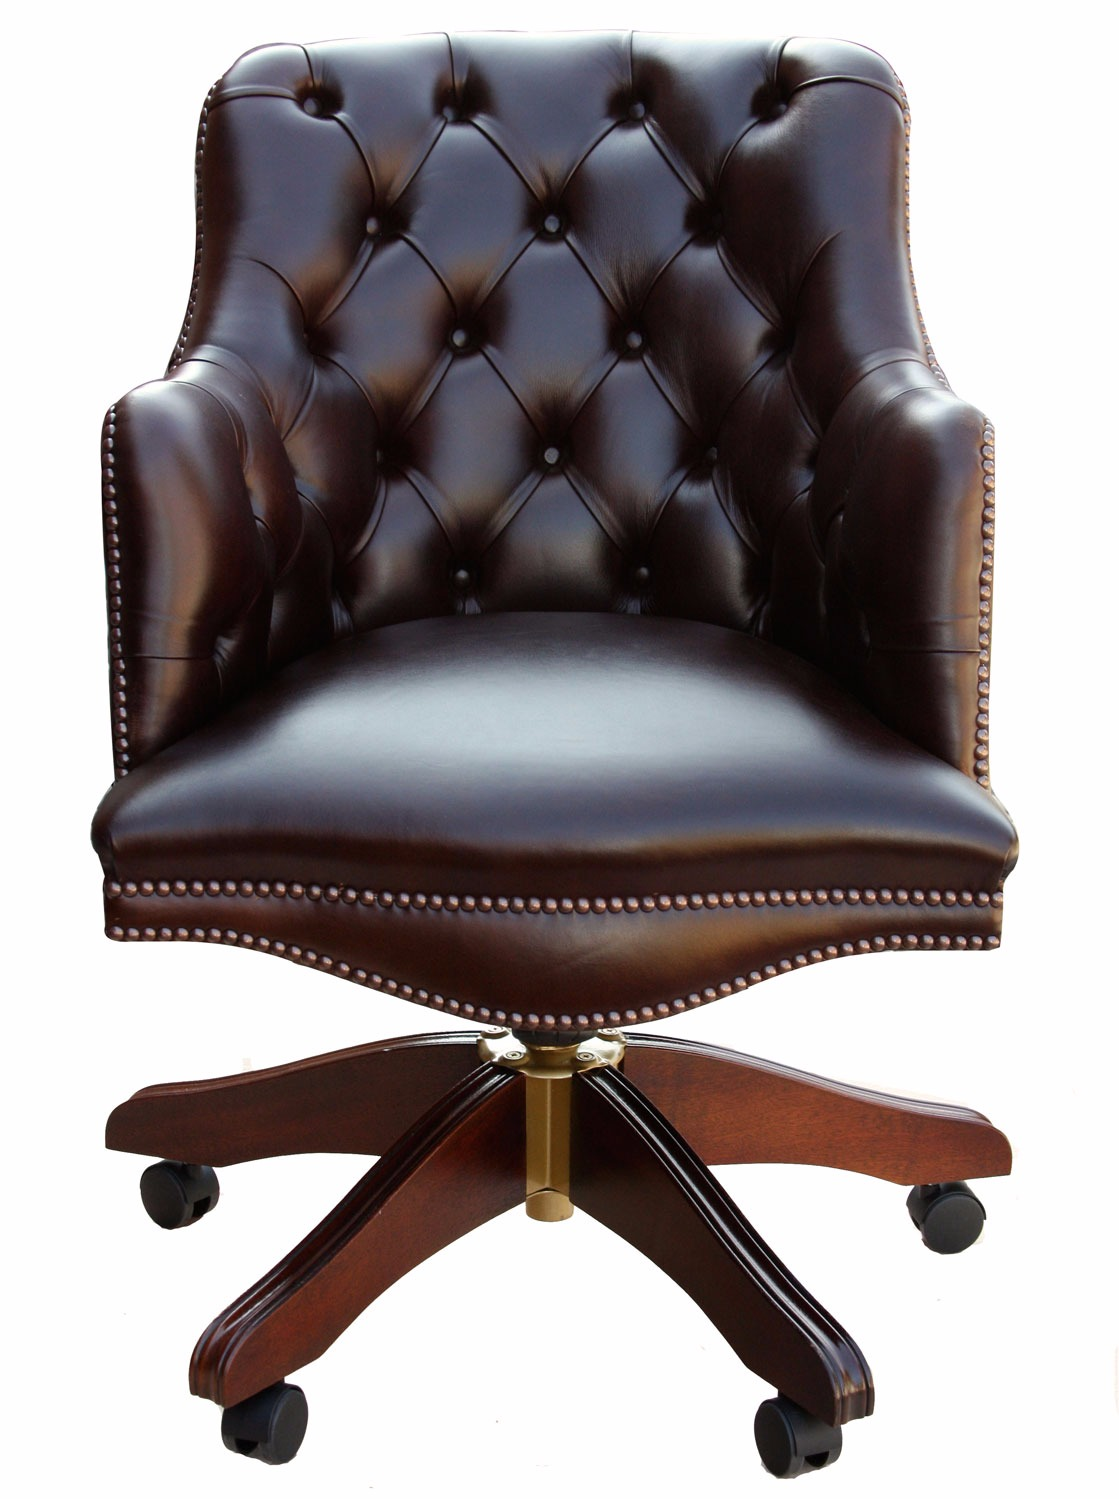 Boatswain Chair Buttoned Bosuns Swivel Chair In Heritage Dark Chocolate